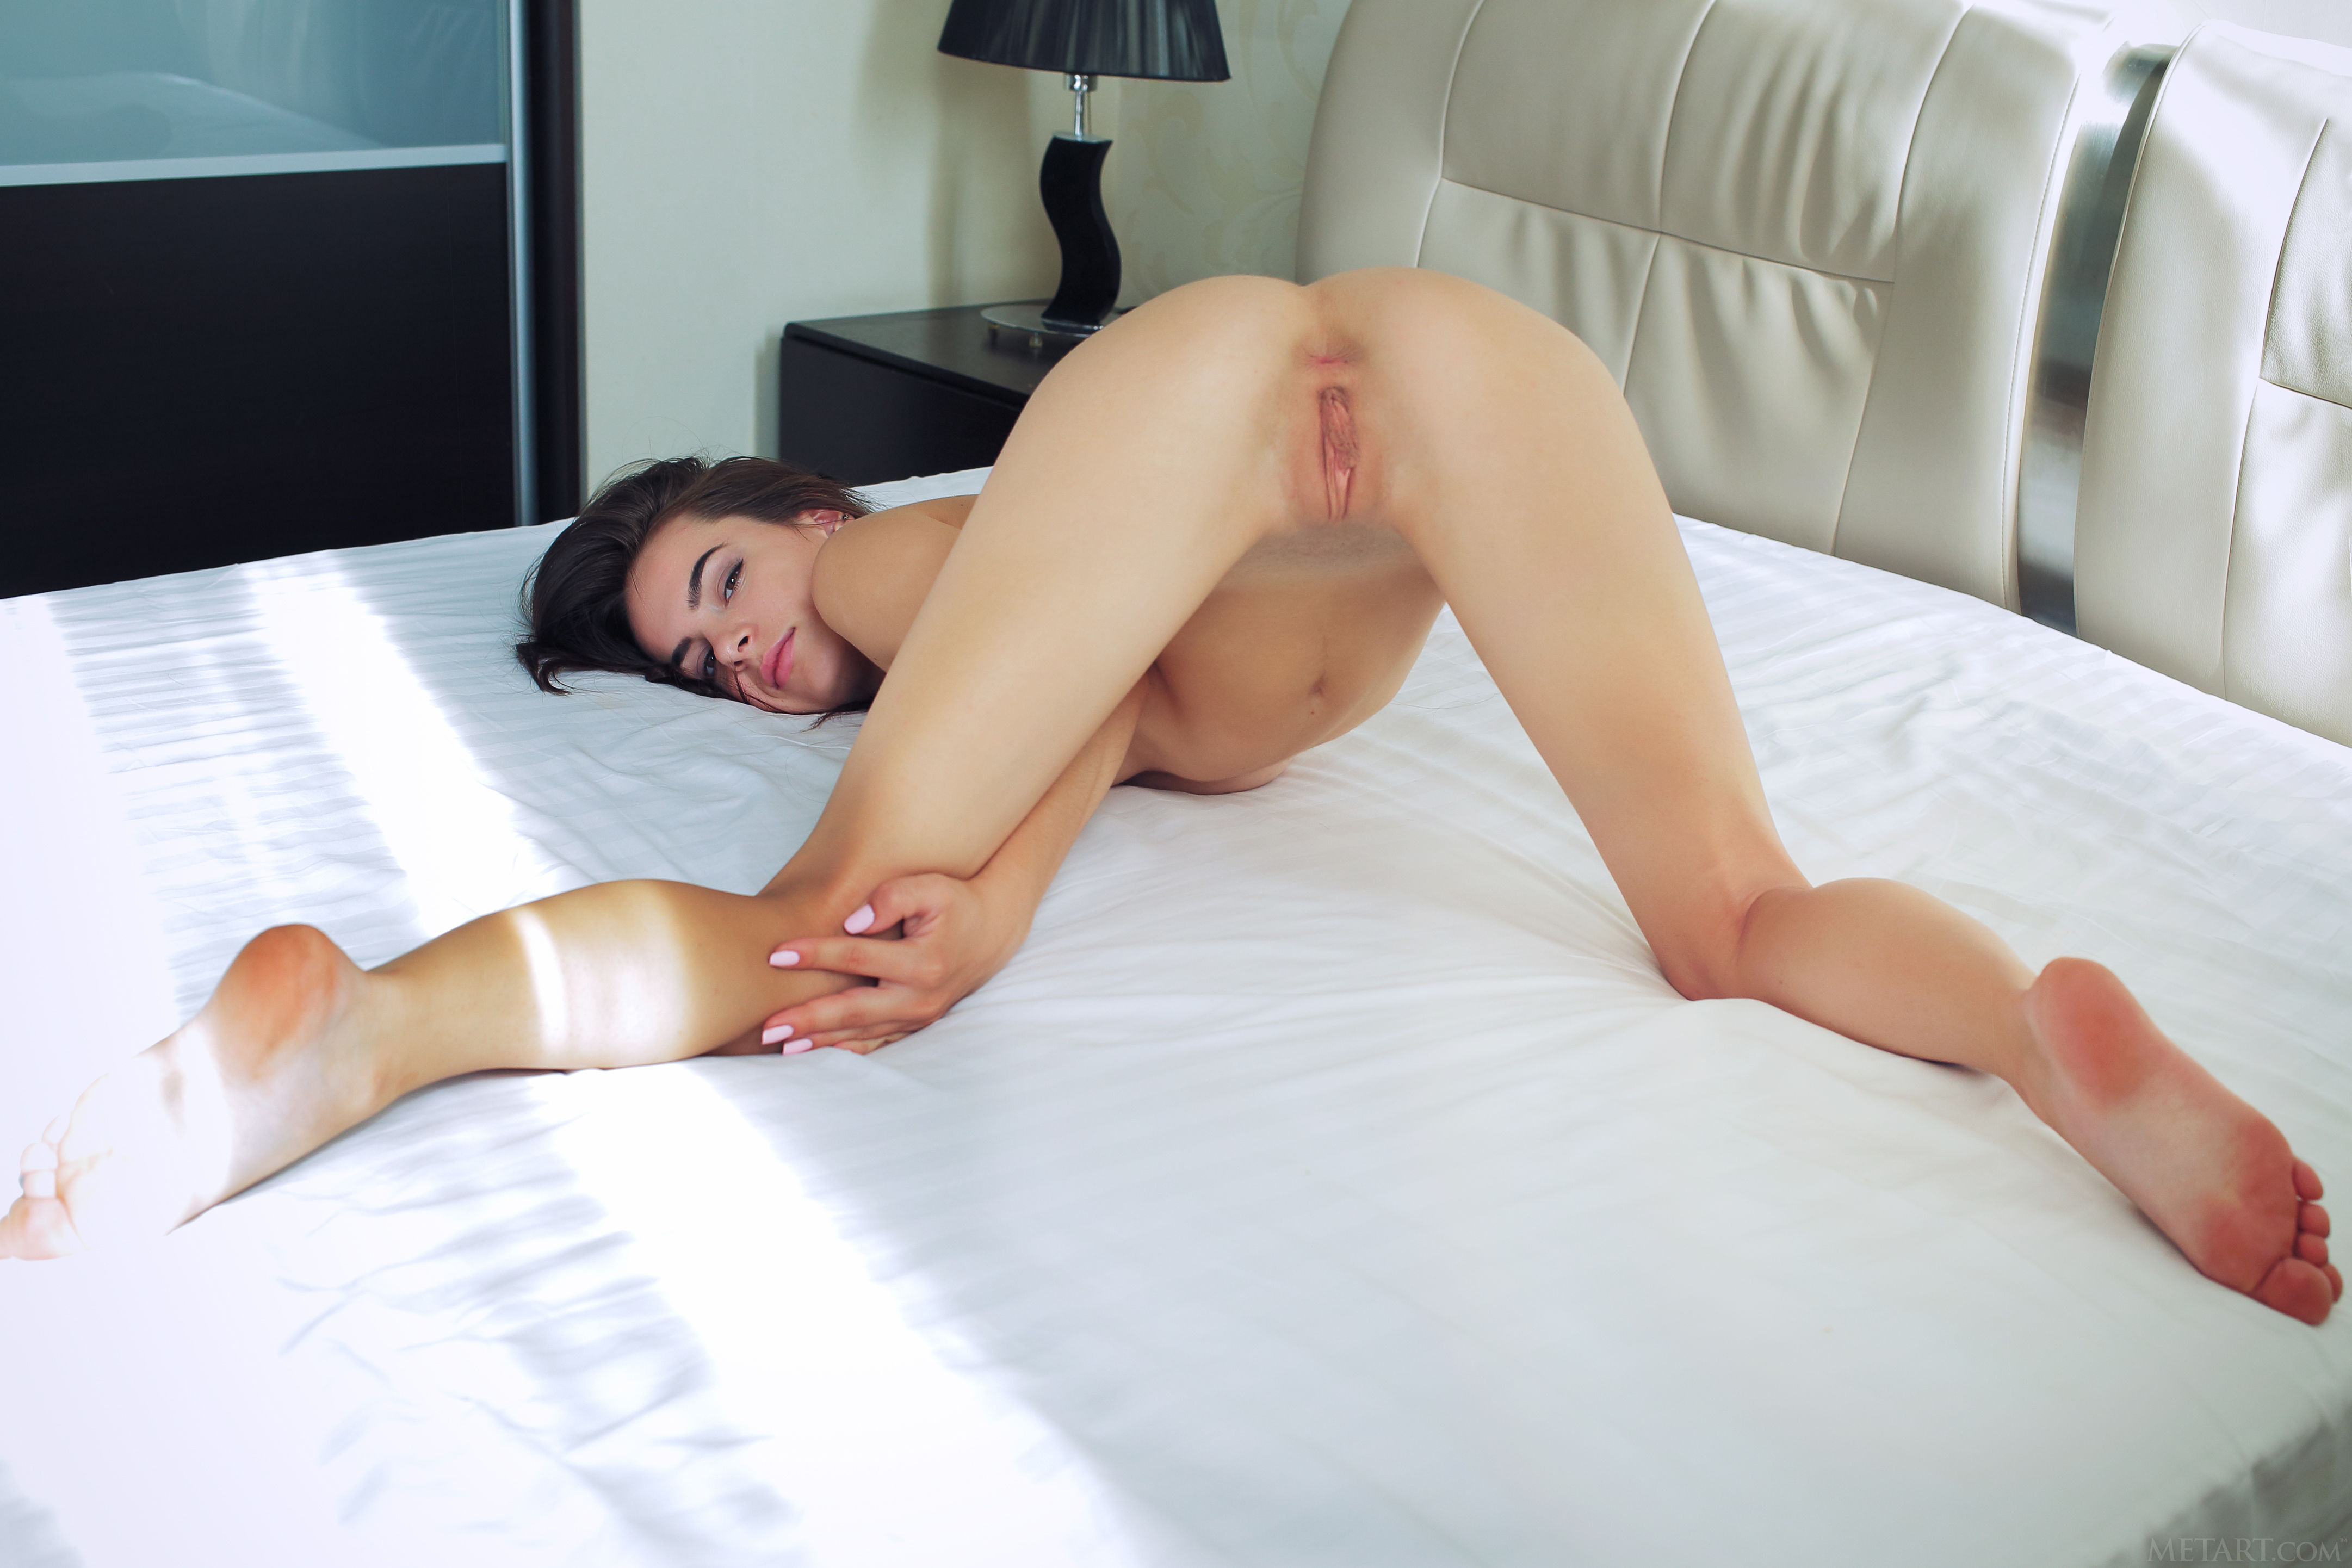 alison angel sex video and other sites alison angel